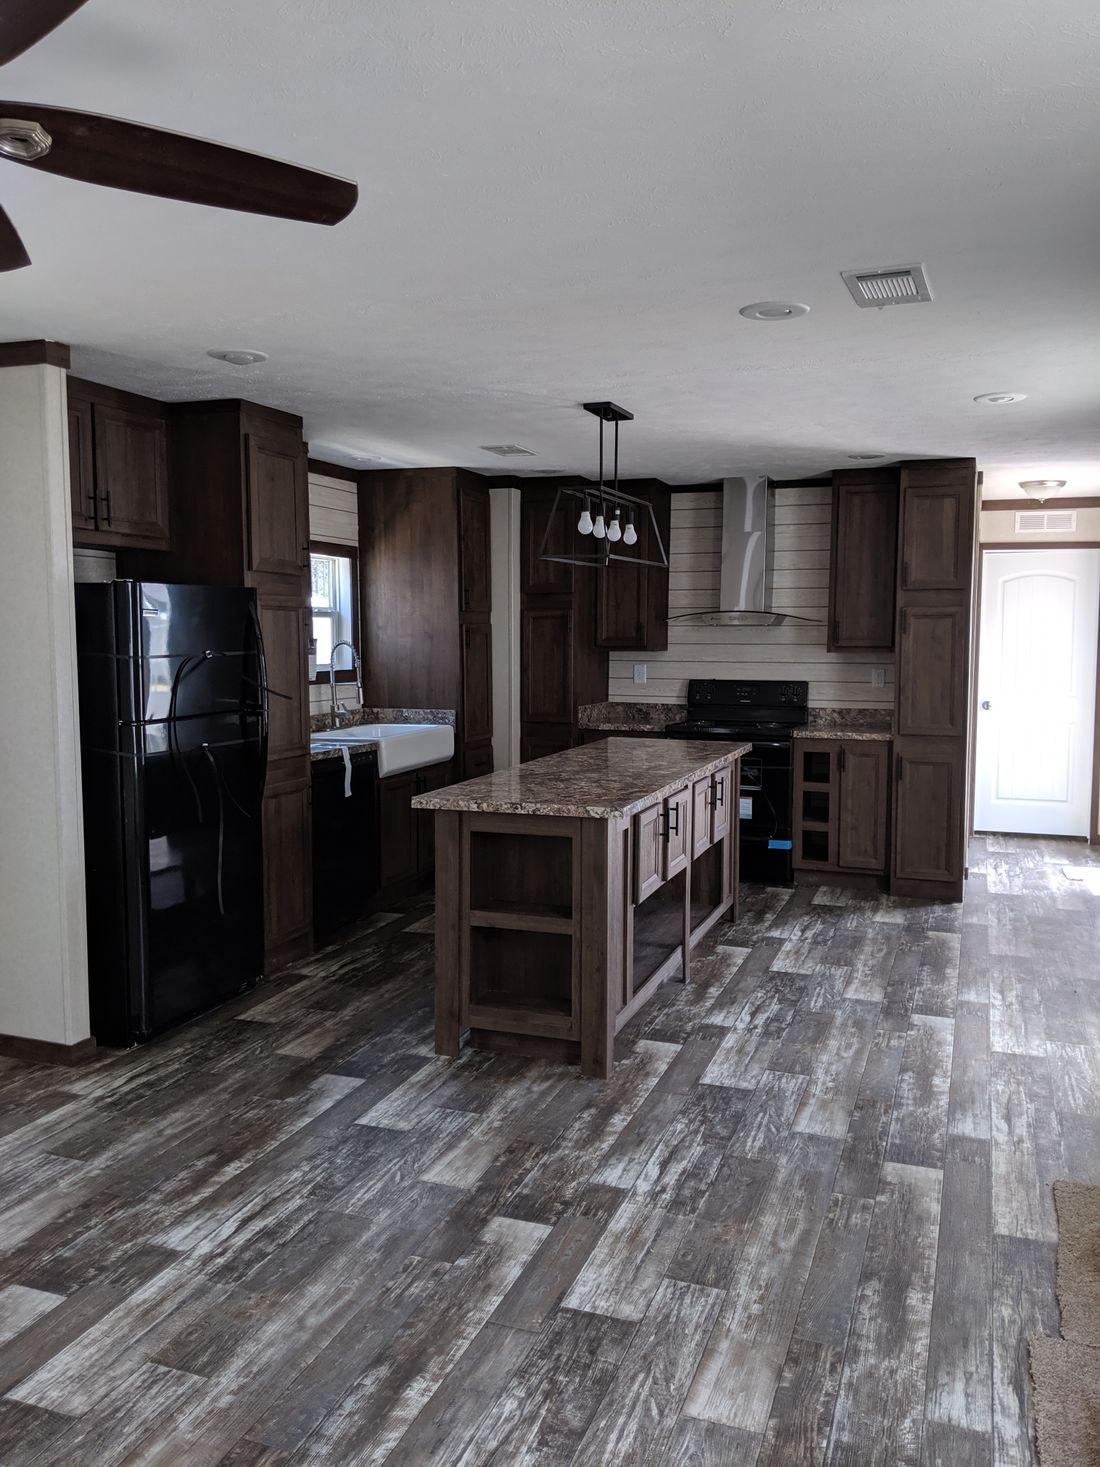 The CS1676-C Kitchen. This Manufactured Mobile Home features 3 bedrooms and 2 baths.